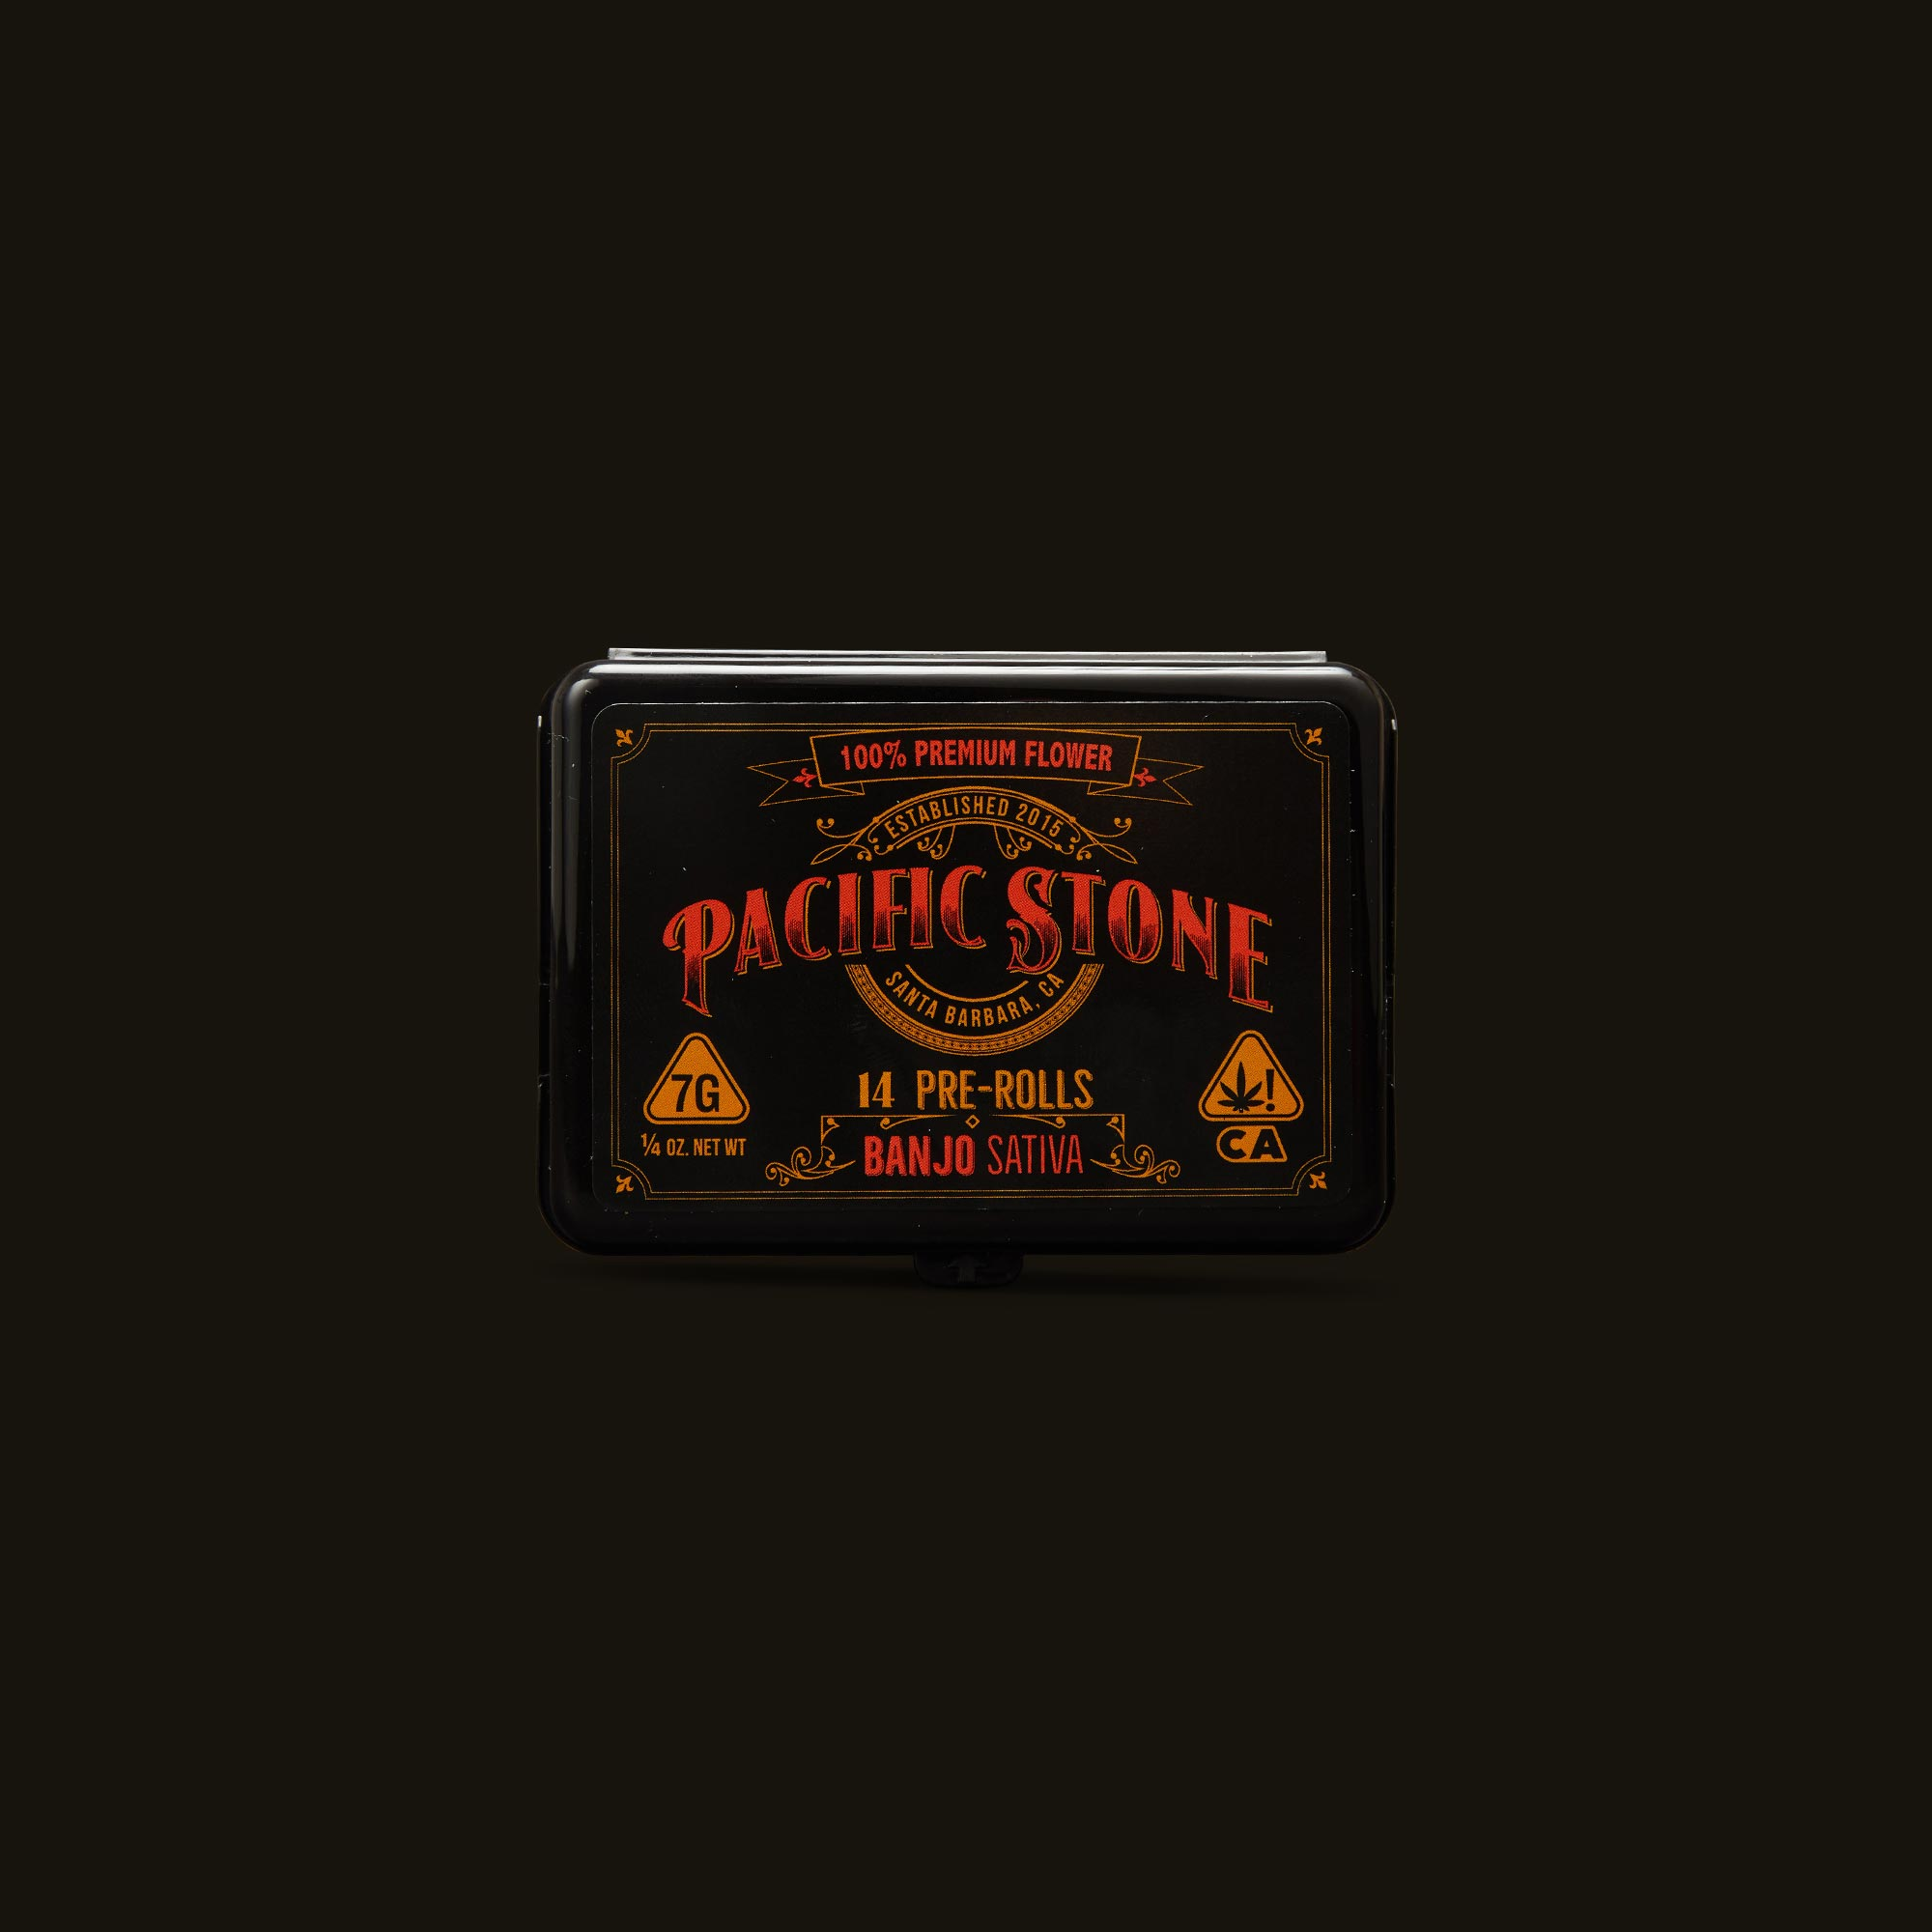 Pacific Stone Banjo Pre-Rolls Front Packaging